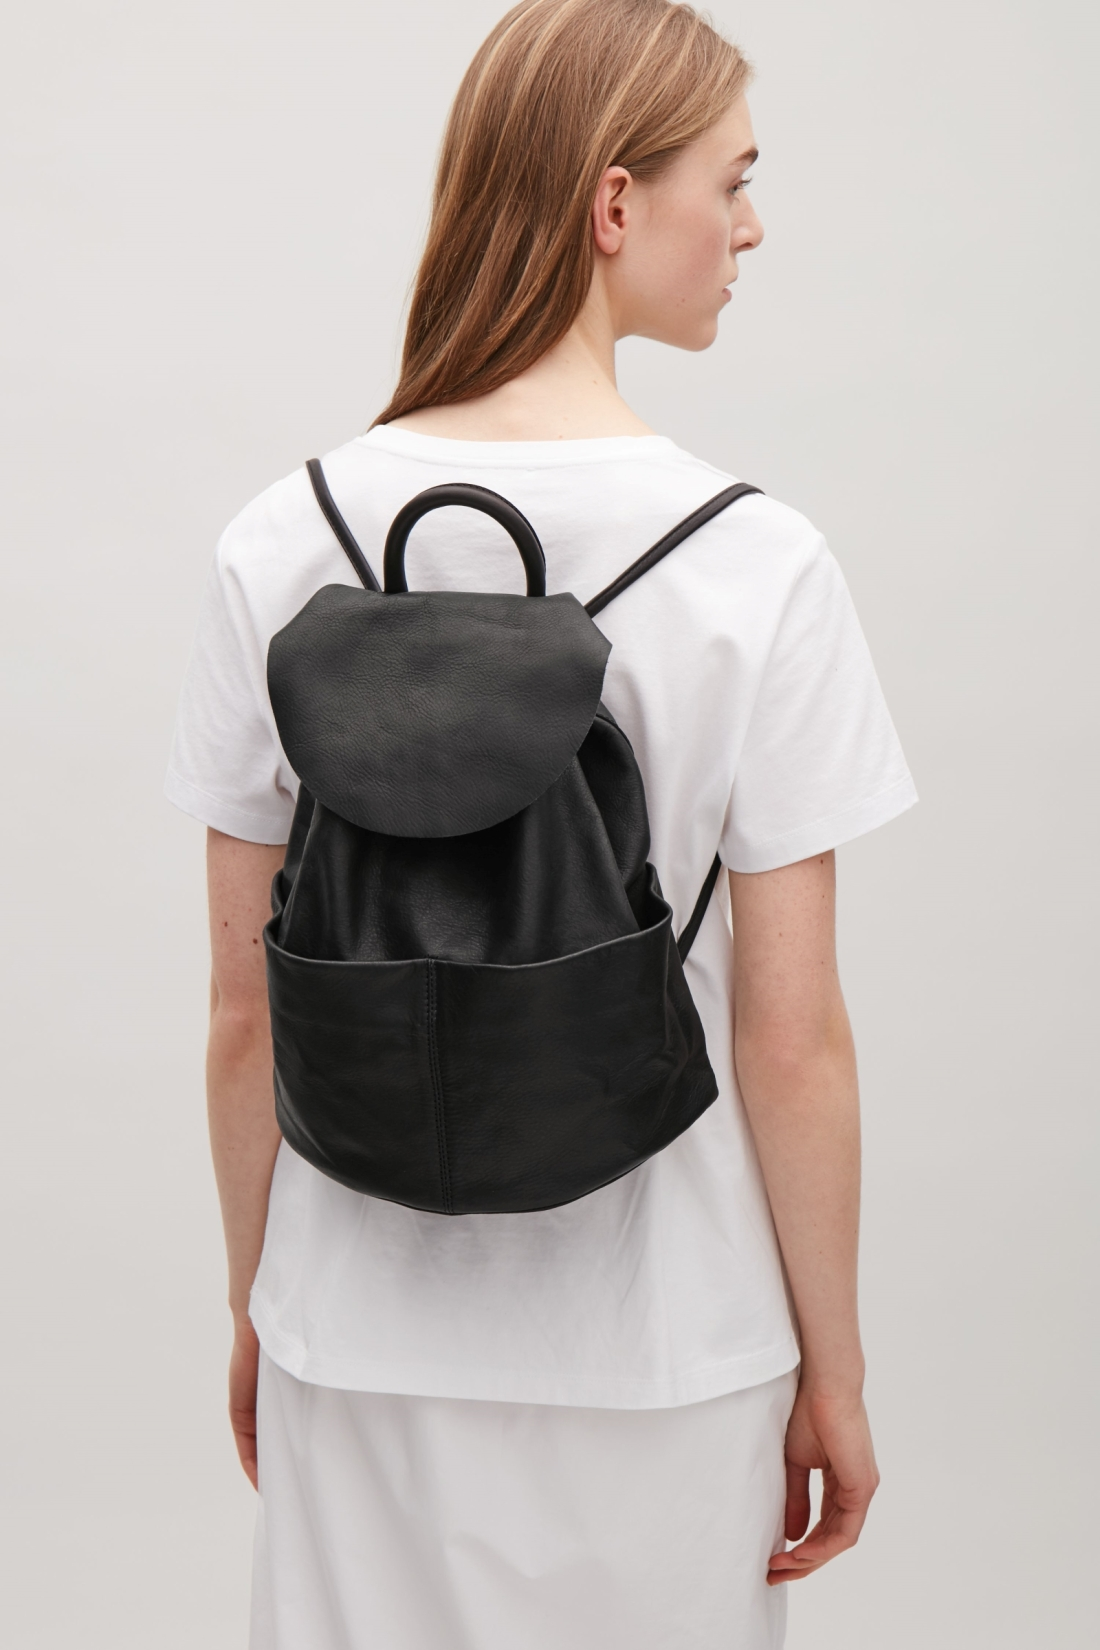 COS backpack